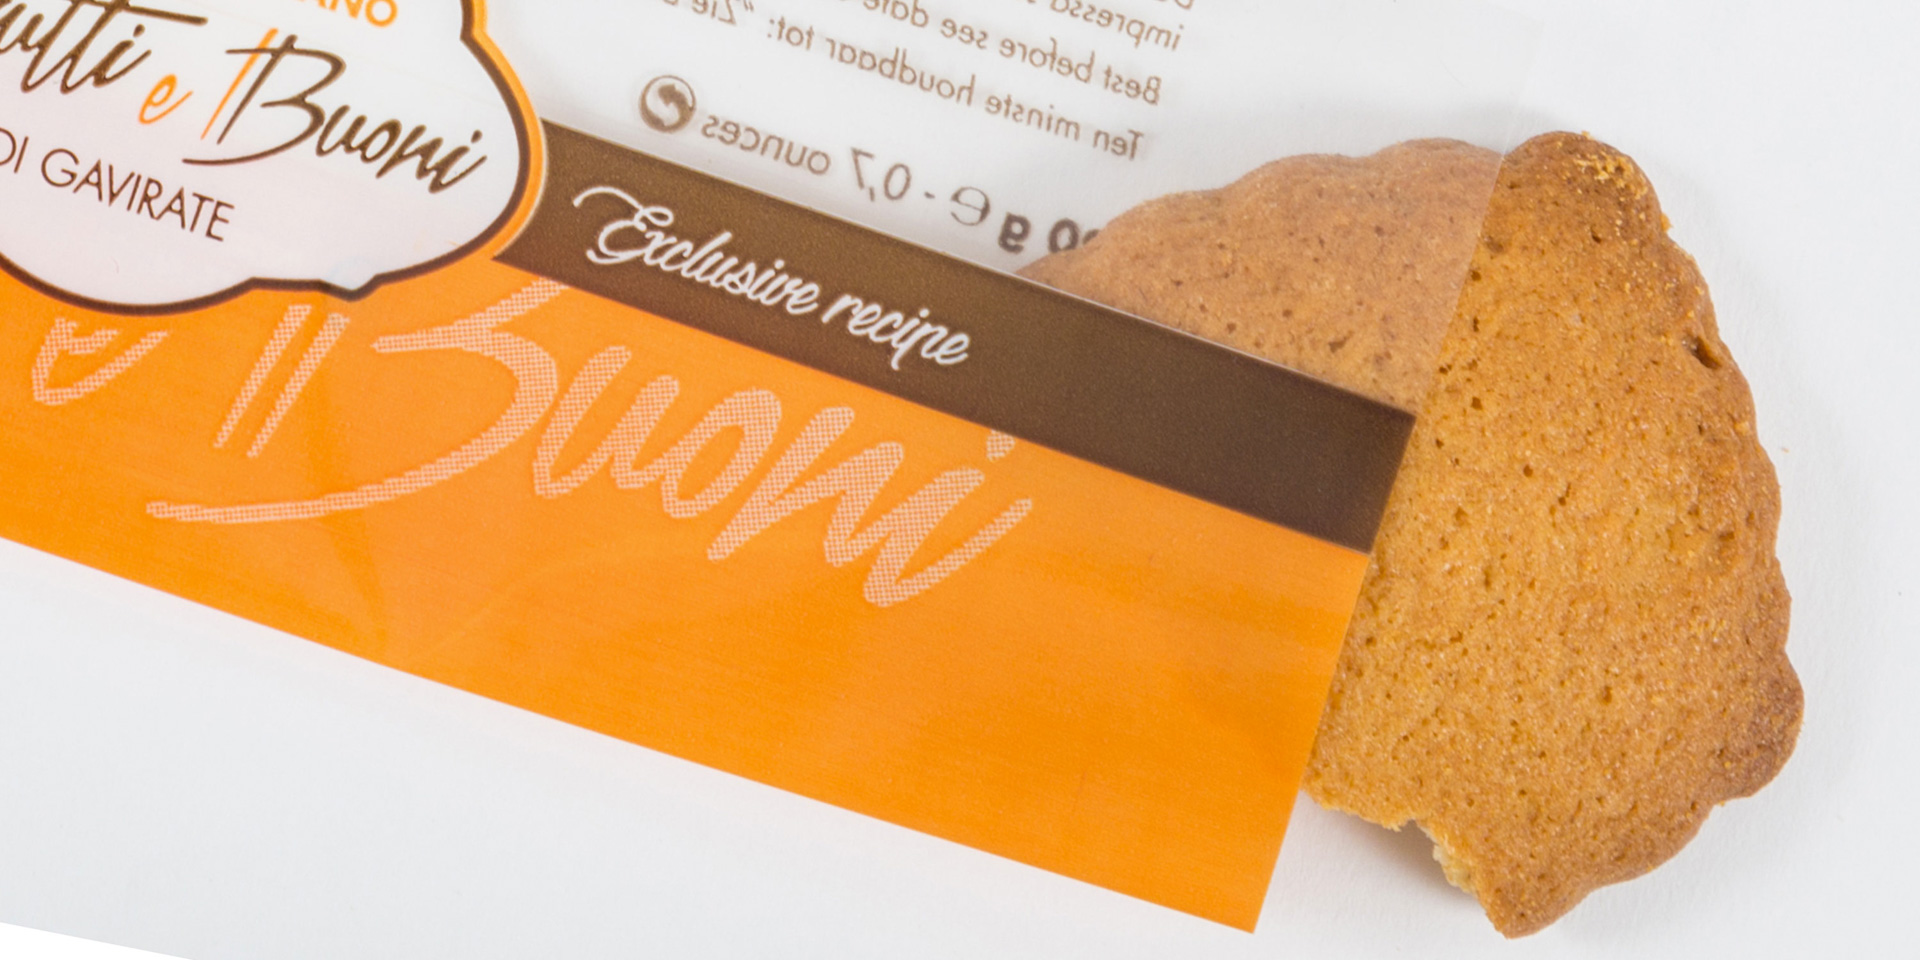 celvil packaging biscotti